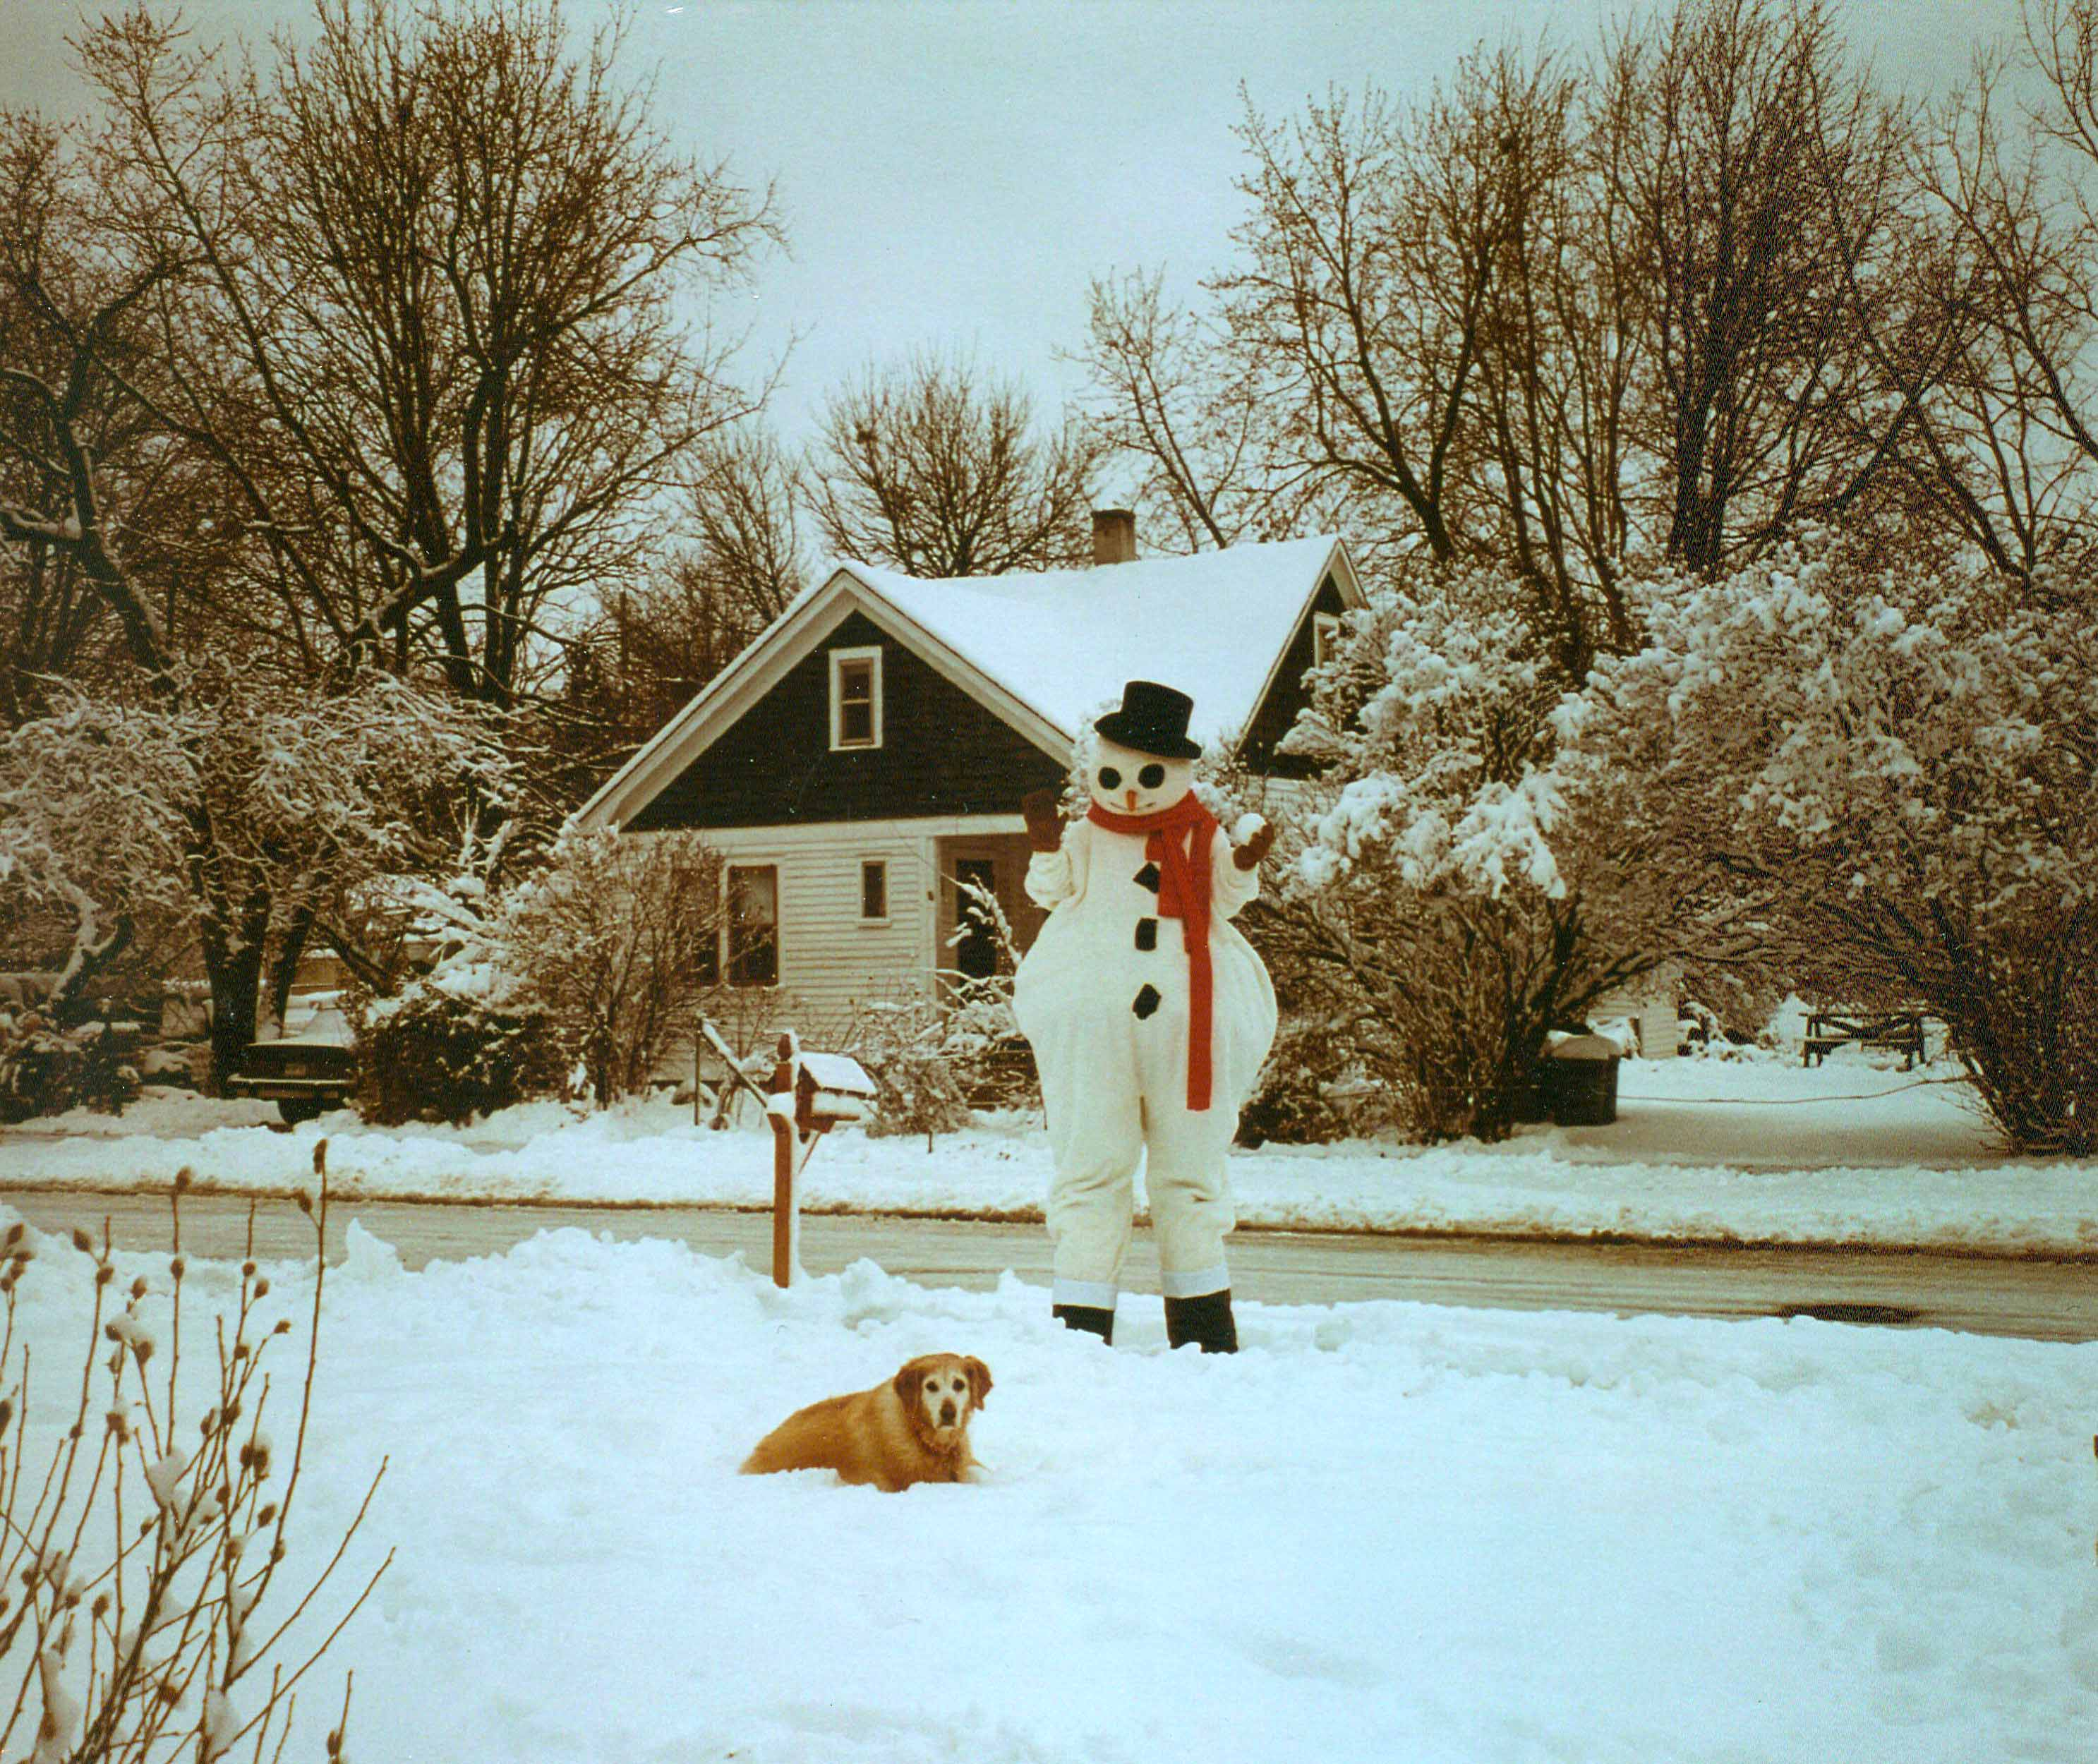 9FT.-SNOWMAN-scanner-35mm-pics-09.jpg